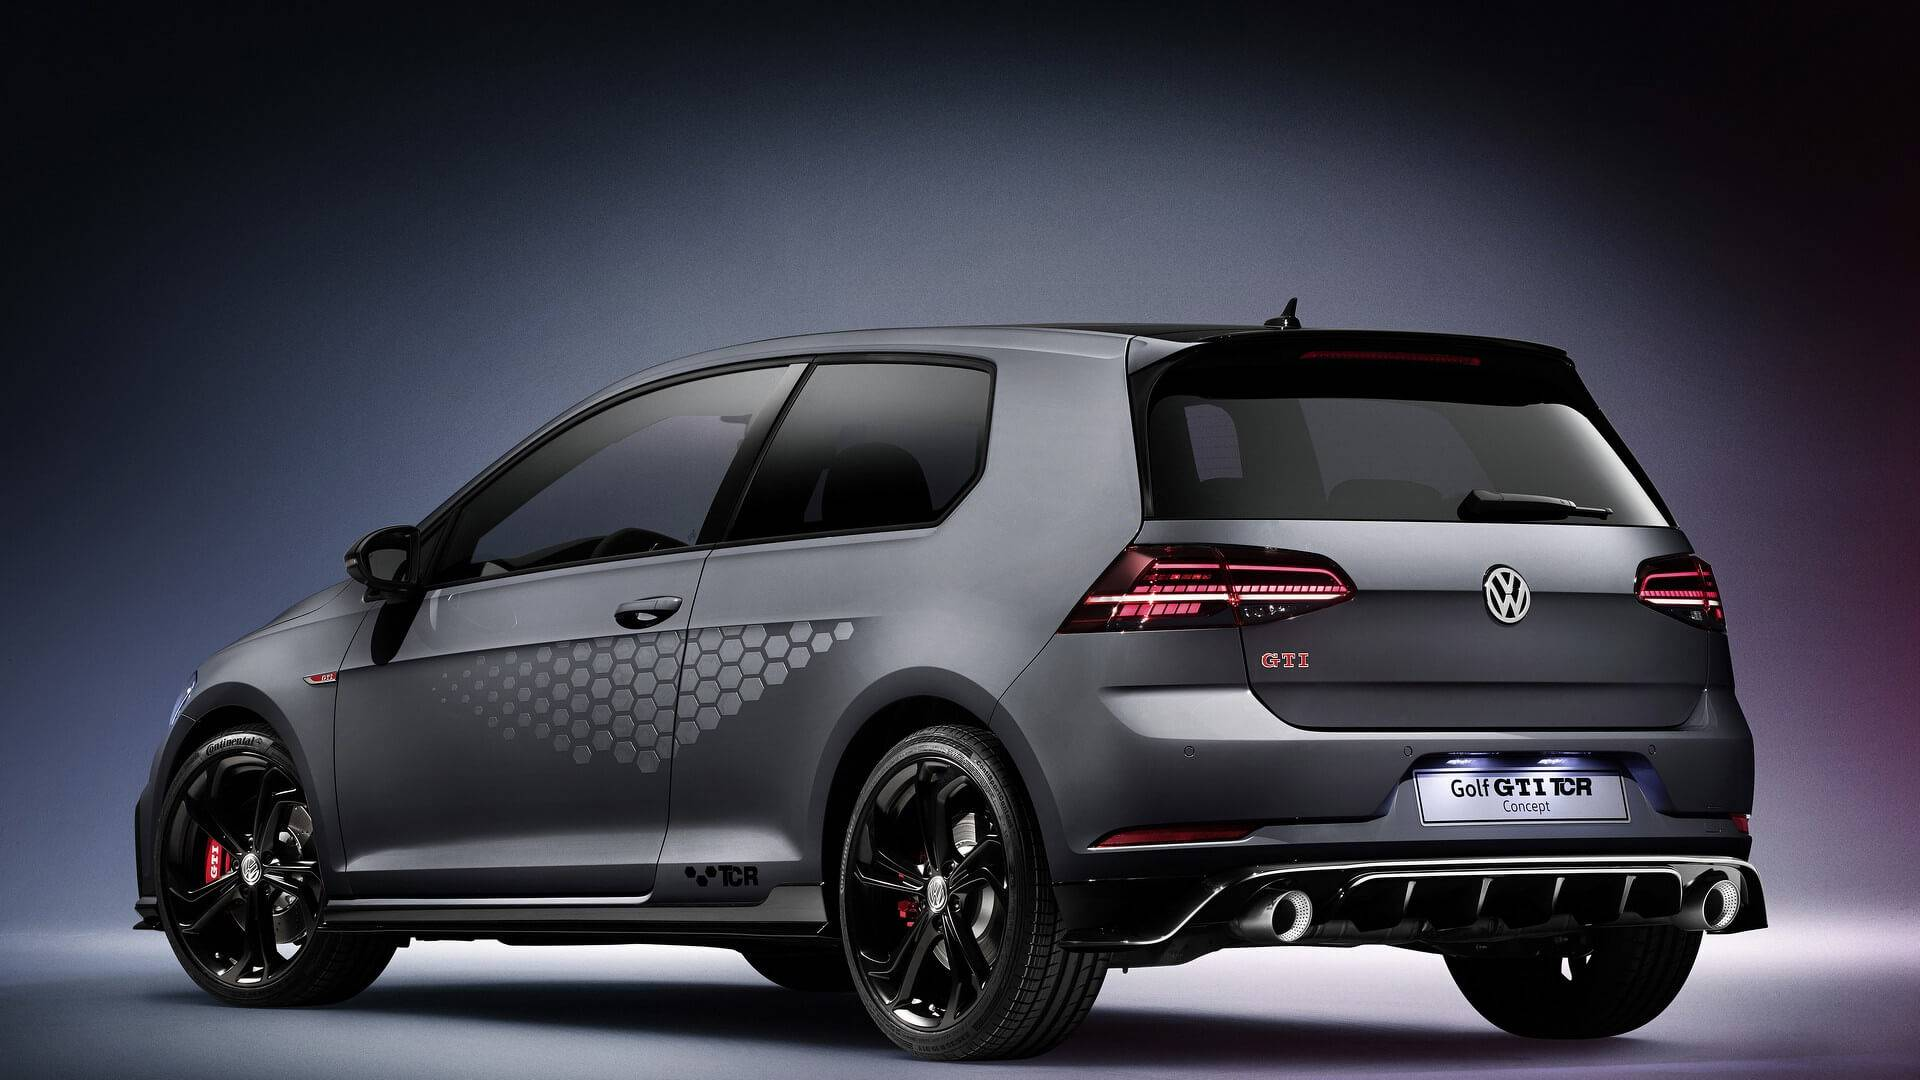 2018-vw-golf-gti-tcr-concept (2)